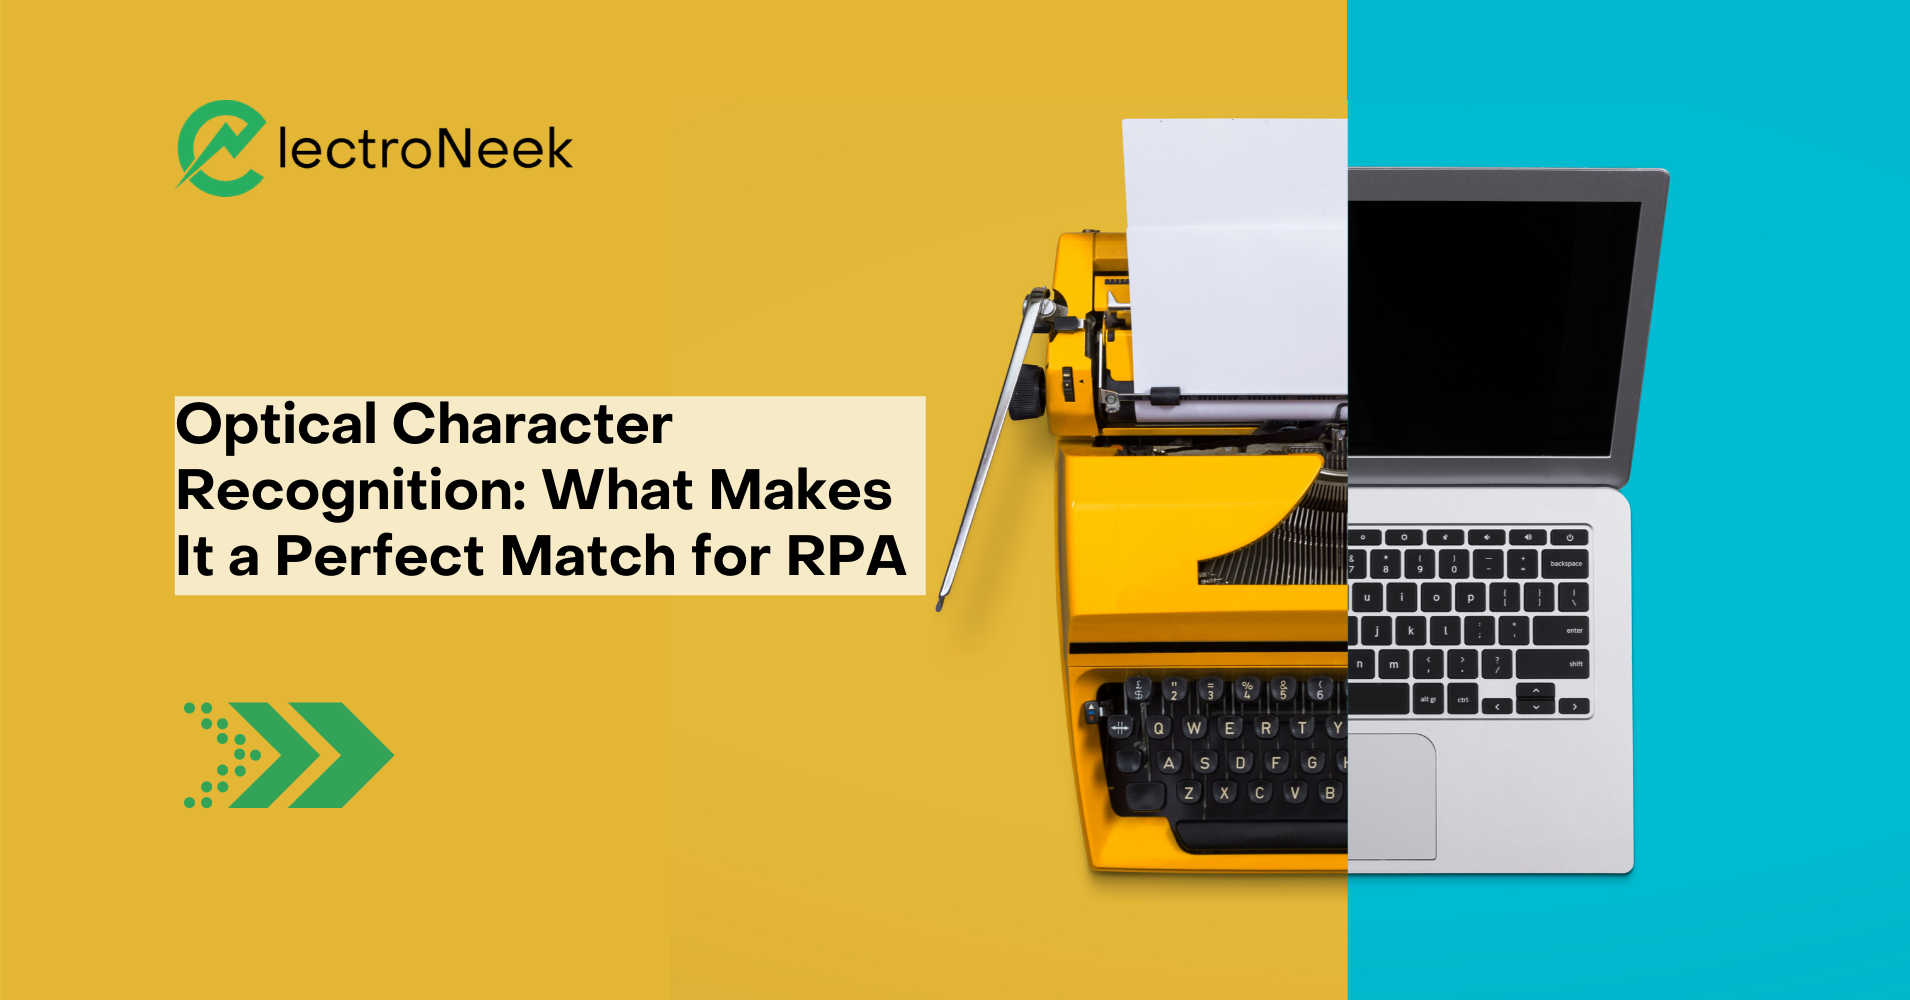 Optical Character Recognition: What Makes It a Perfect Match for RPA